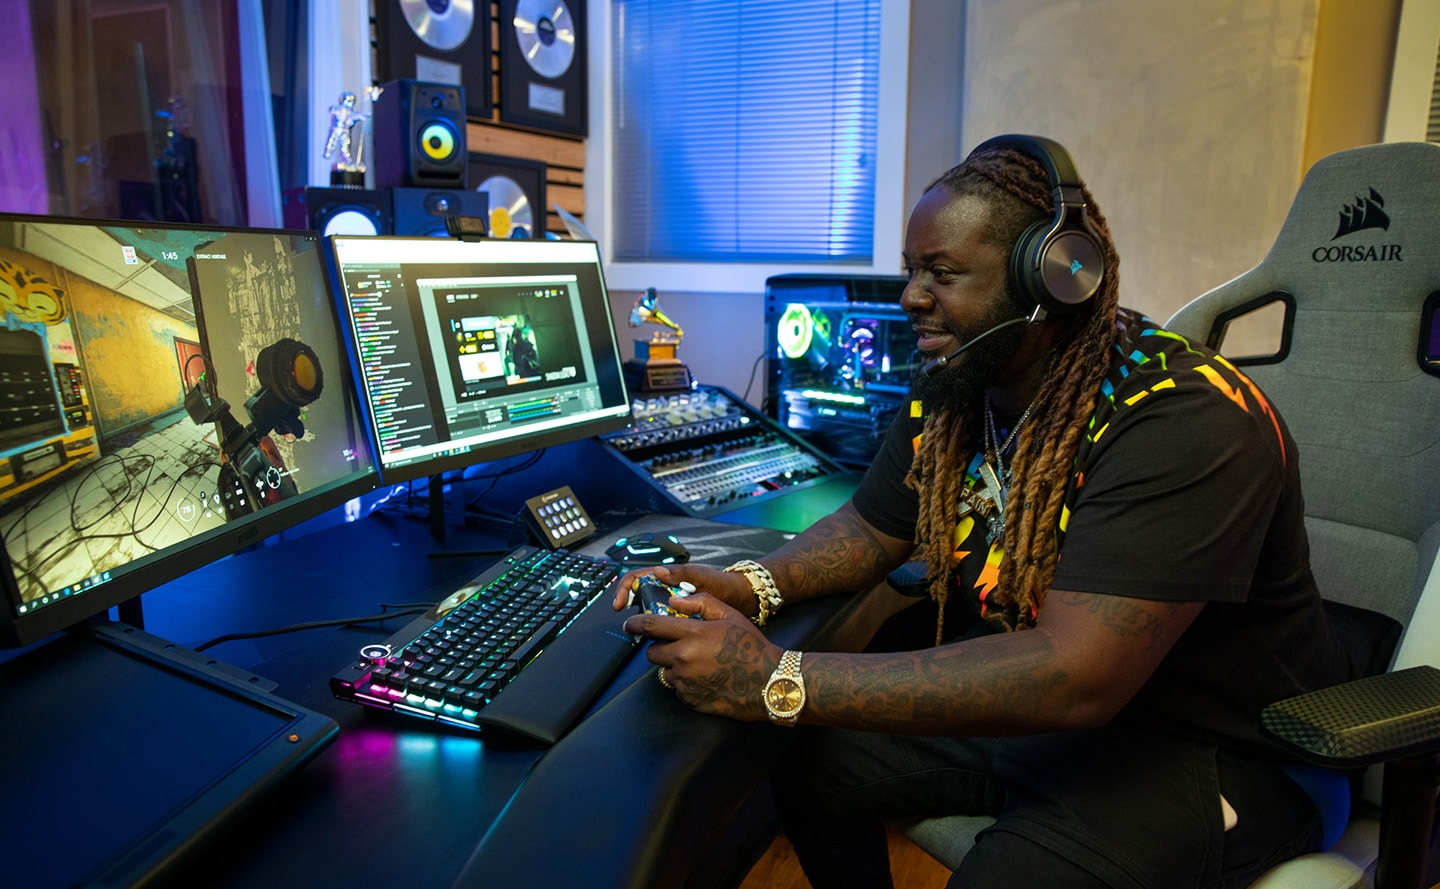 t-pain custom millennium gaming desktop from origin pc